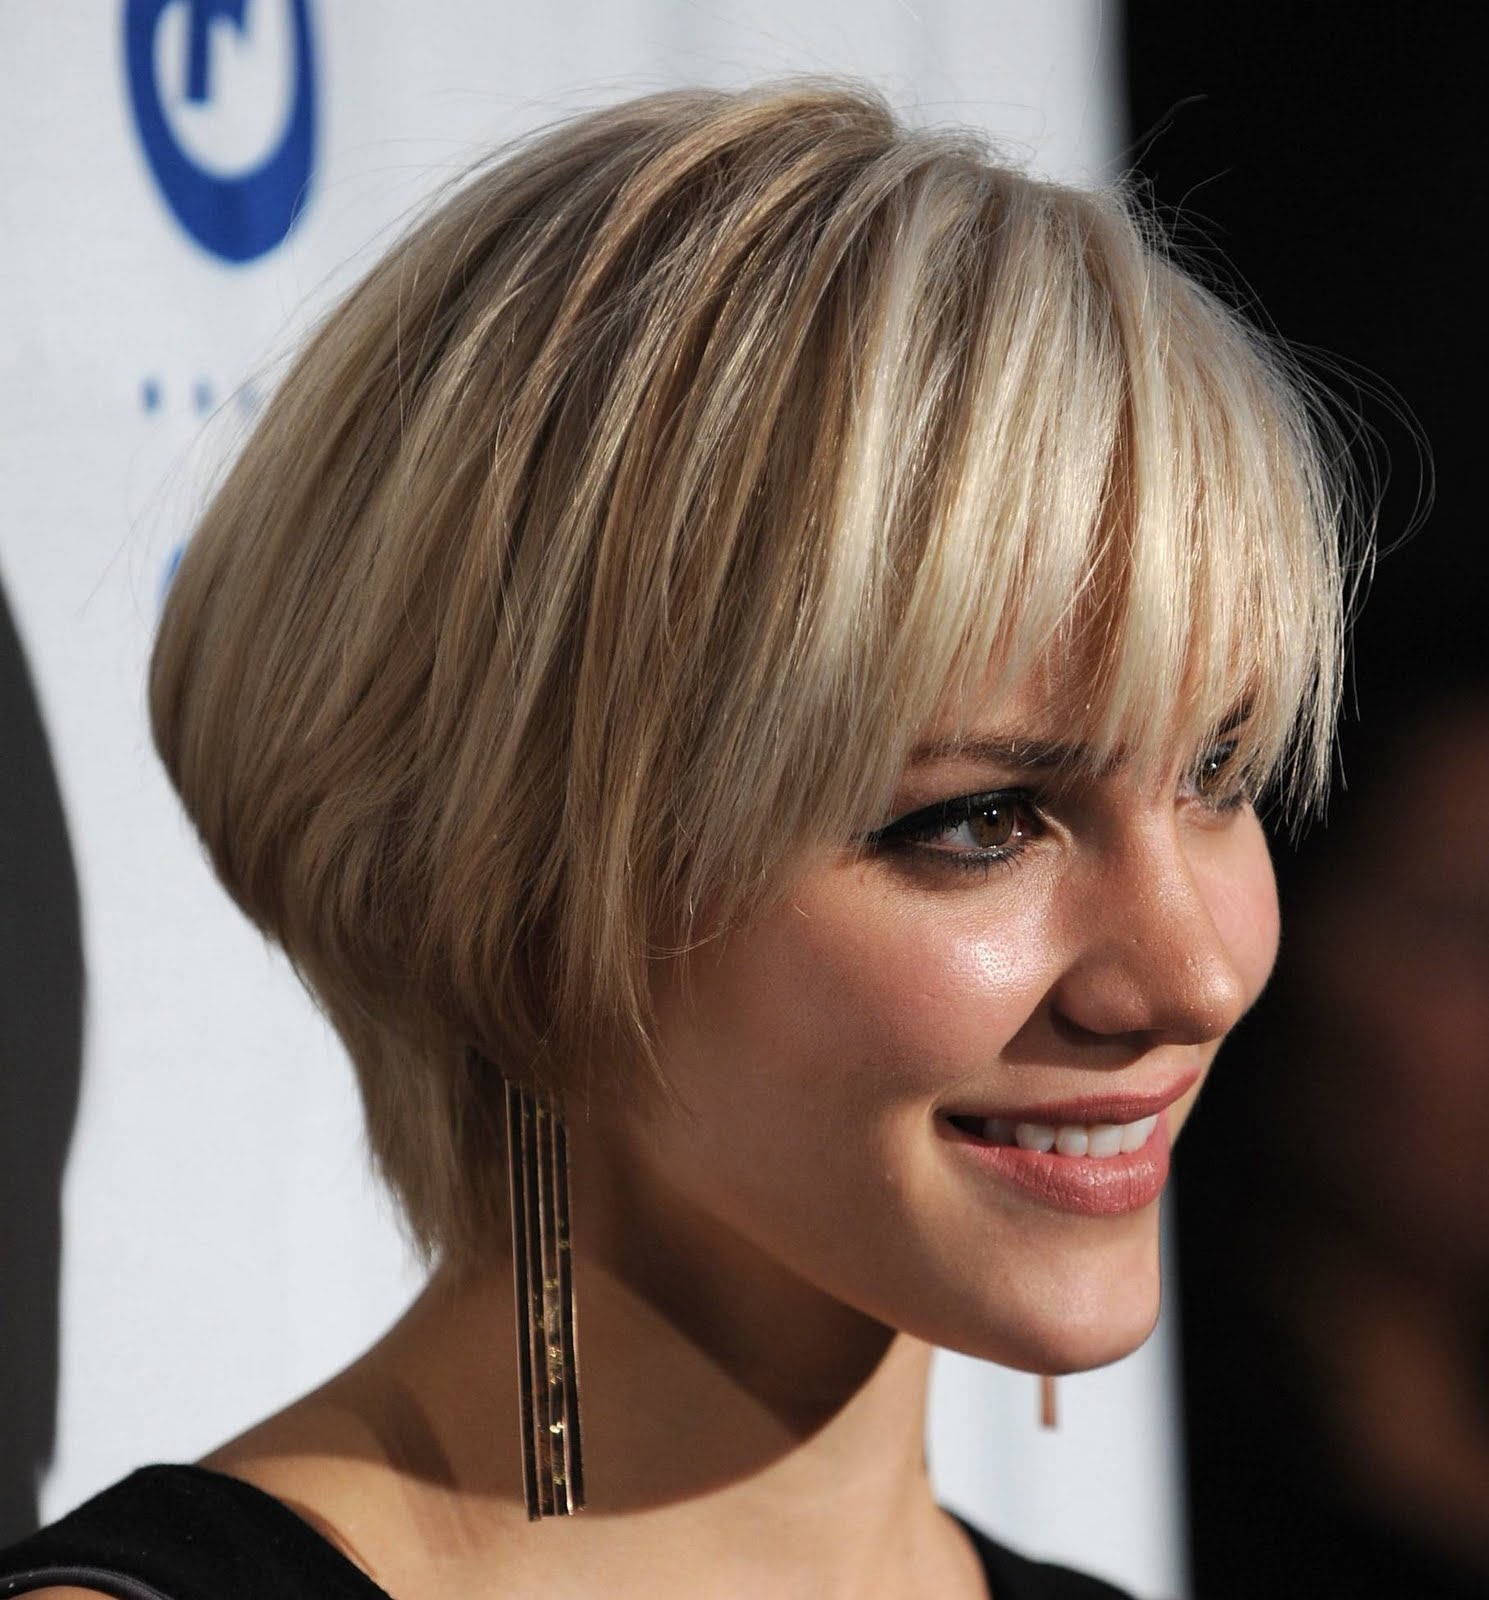 cute hairstyles for girls with short hair Blonde pixie